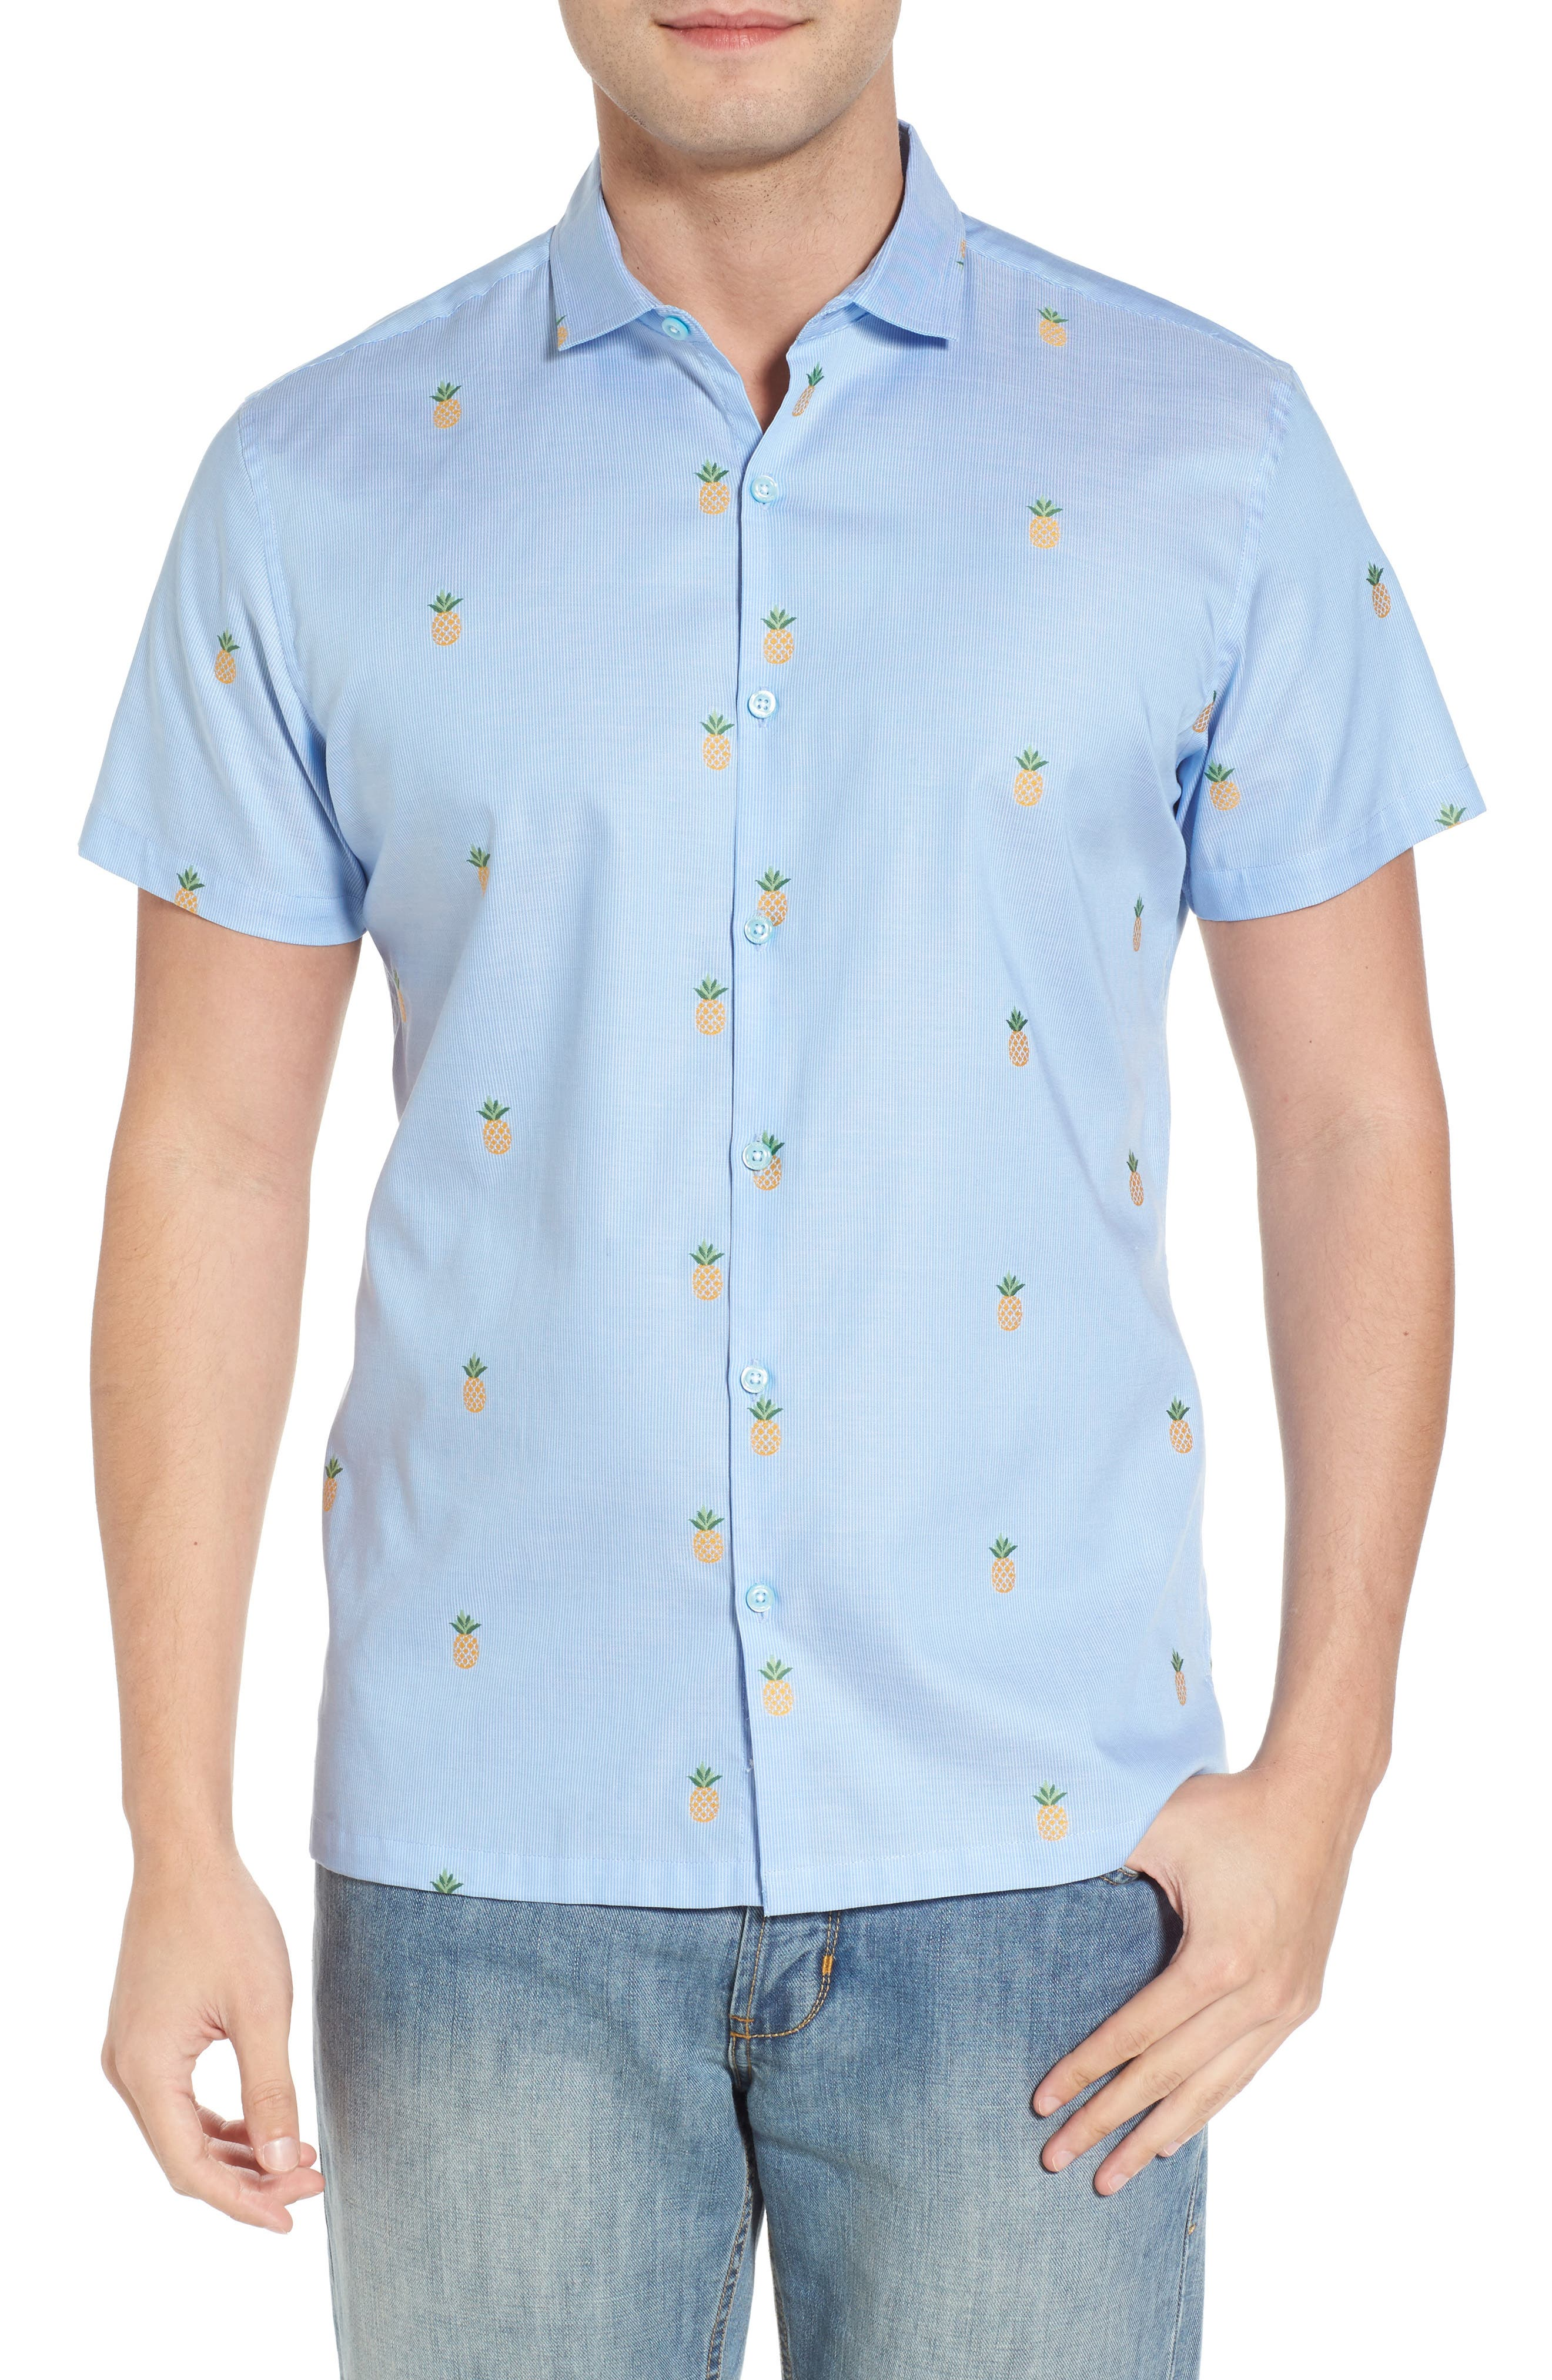 Dole 'N' Row Trim Fit Embroidered Sport Shirt,                         Main,                         color, 409